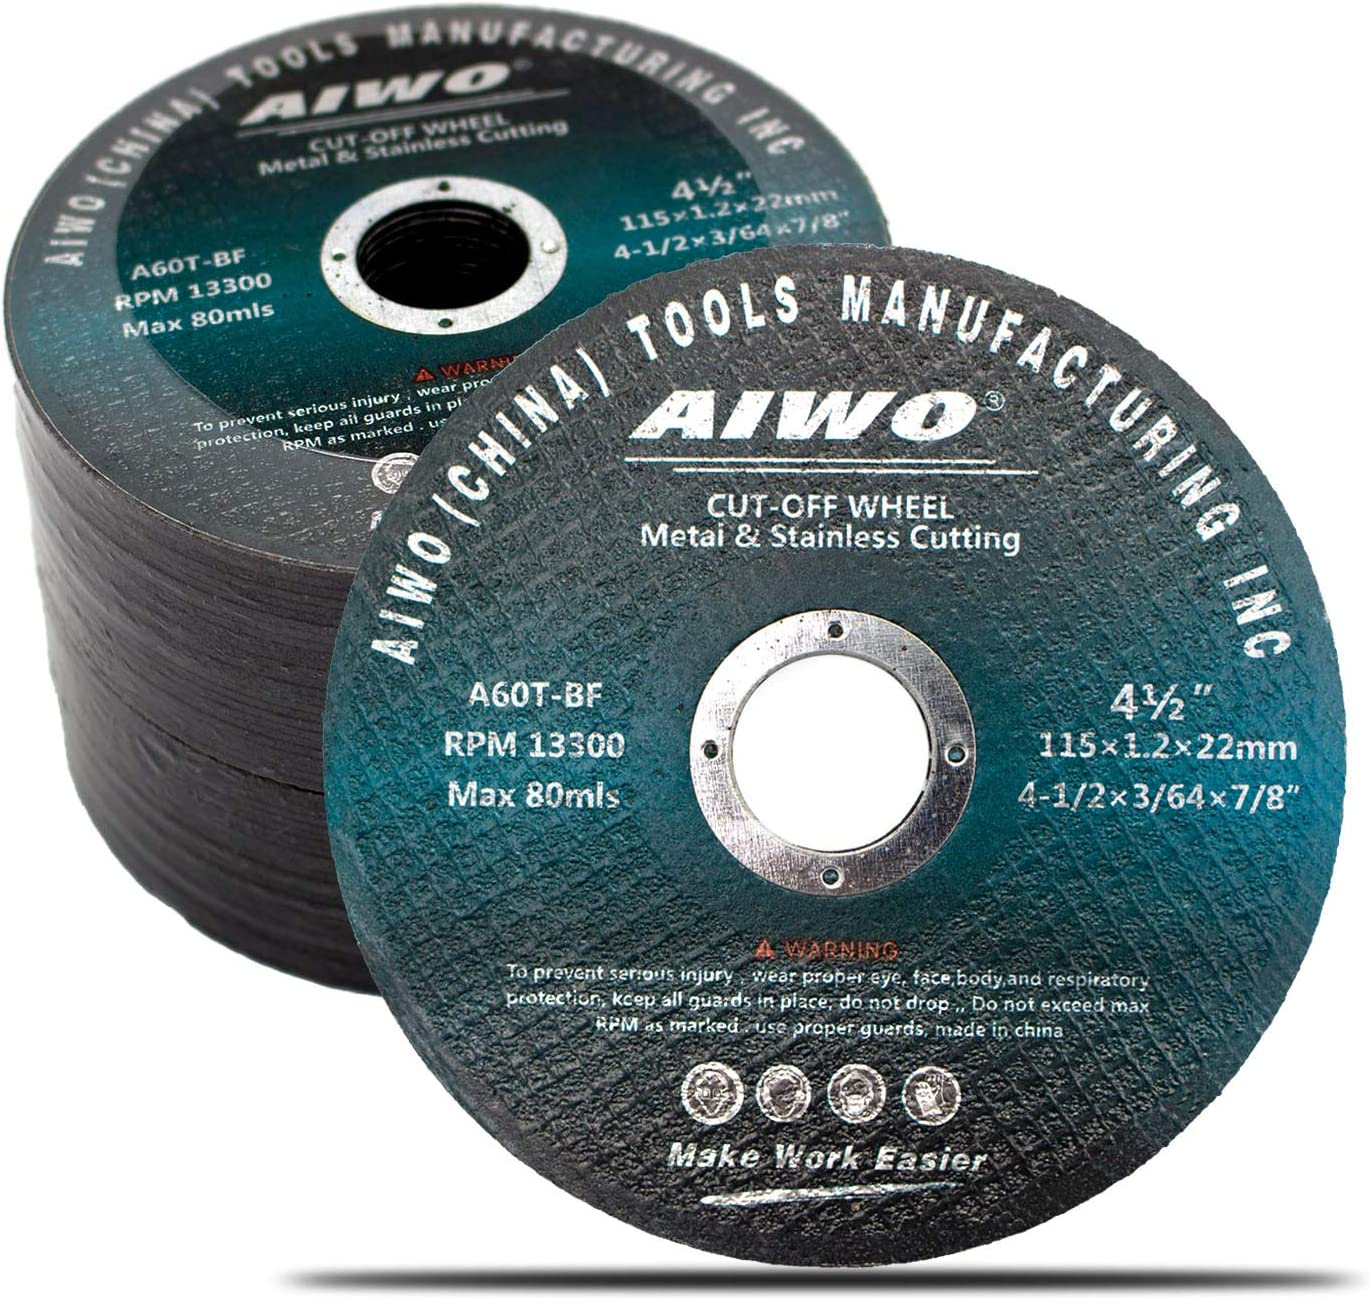 AIWO 25 Pack Grinding Wheel,Cutting Wheel,4-1/2-Inch'Cutting Disc, Cut Off Wheel with 0.04'' thickness, Alumina Grinder Blades For Metal, Stainless Steel (25PCS)